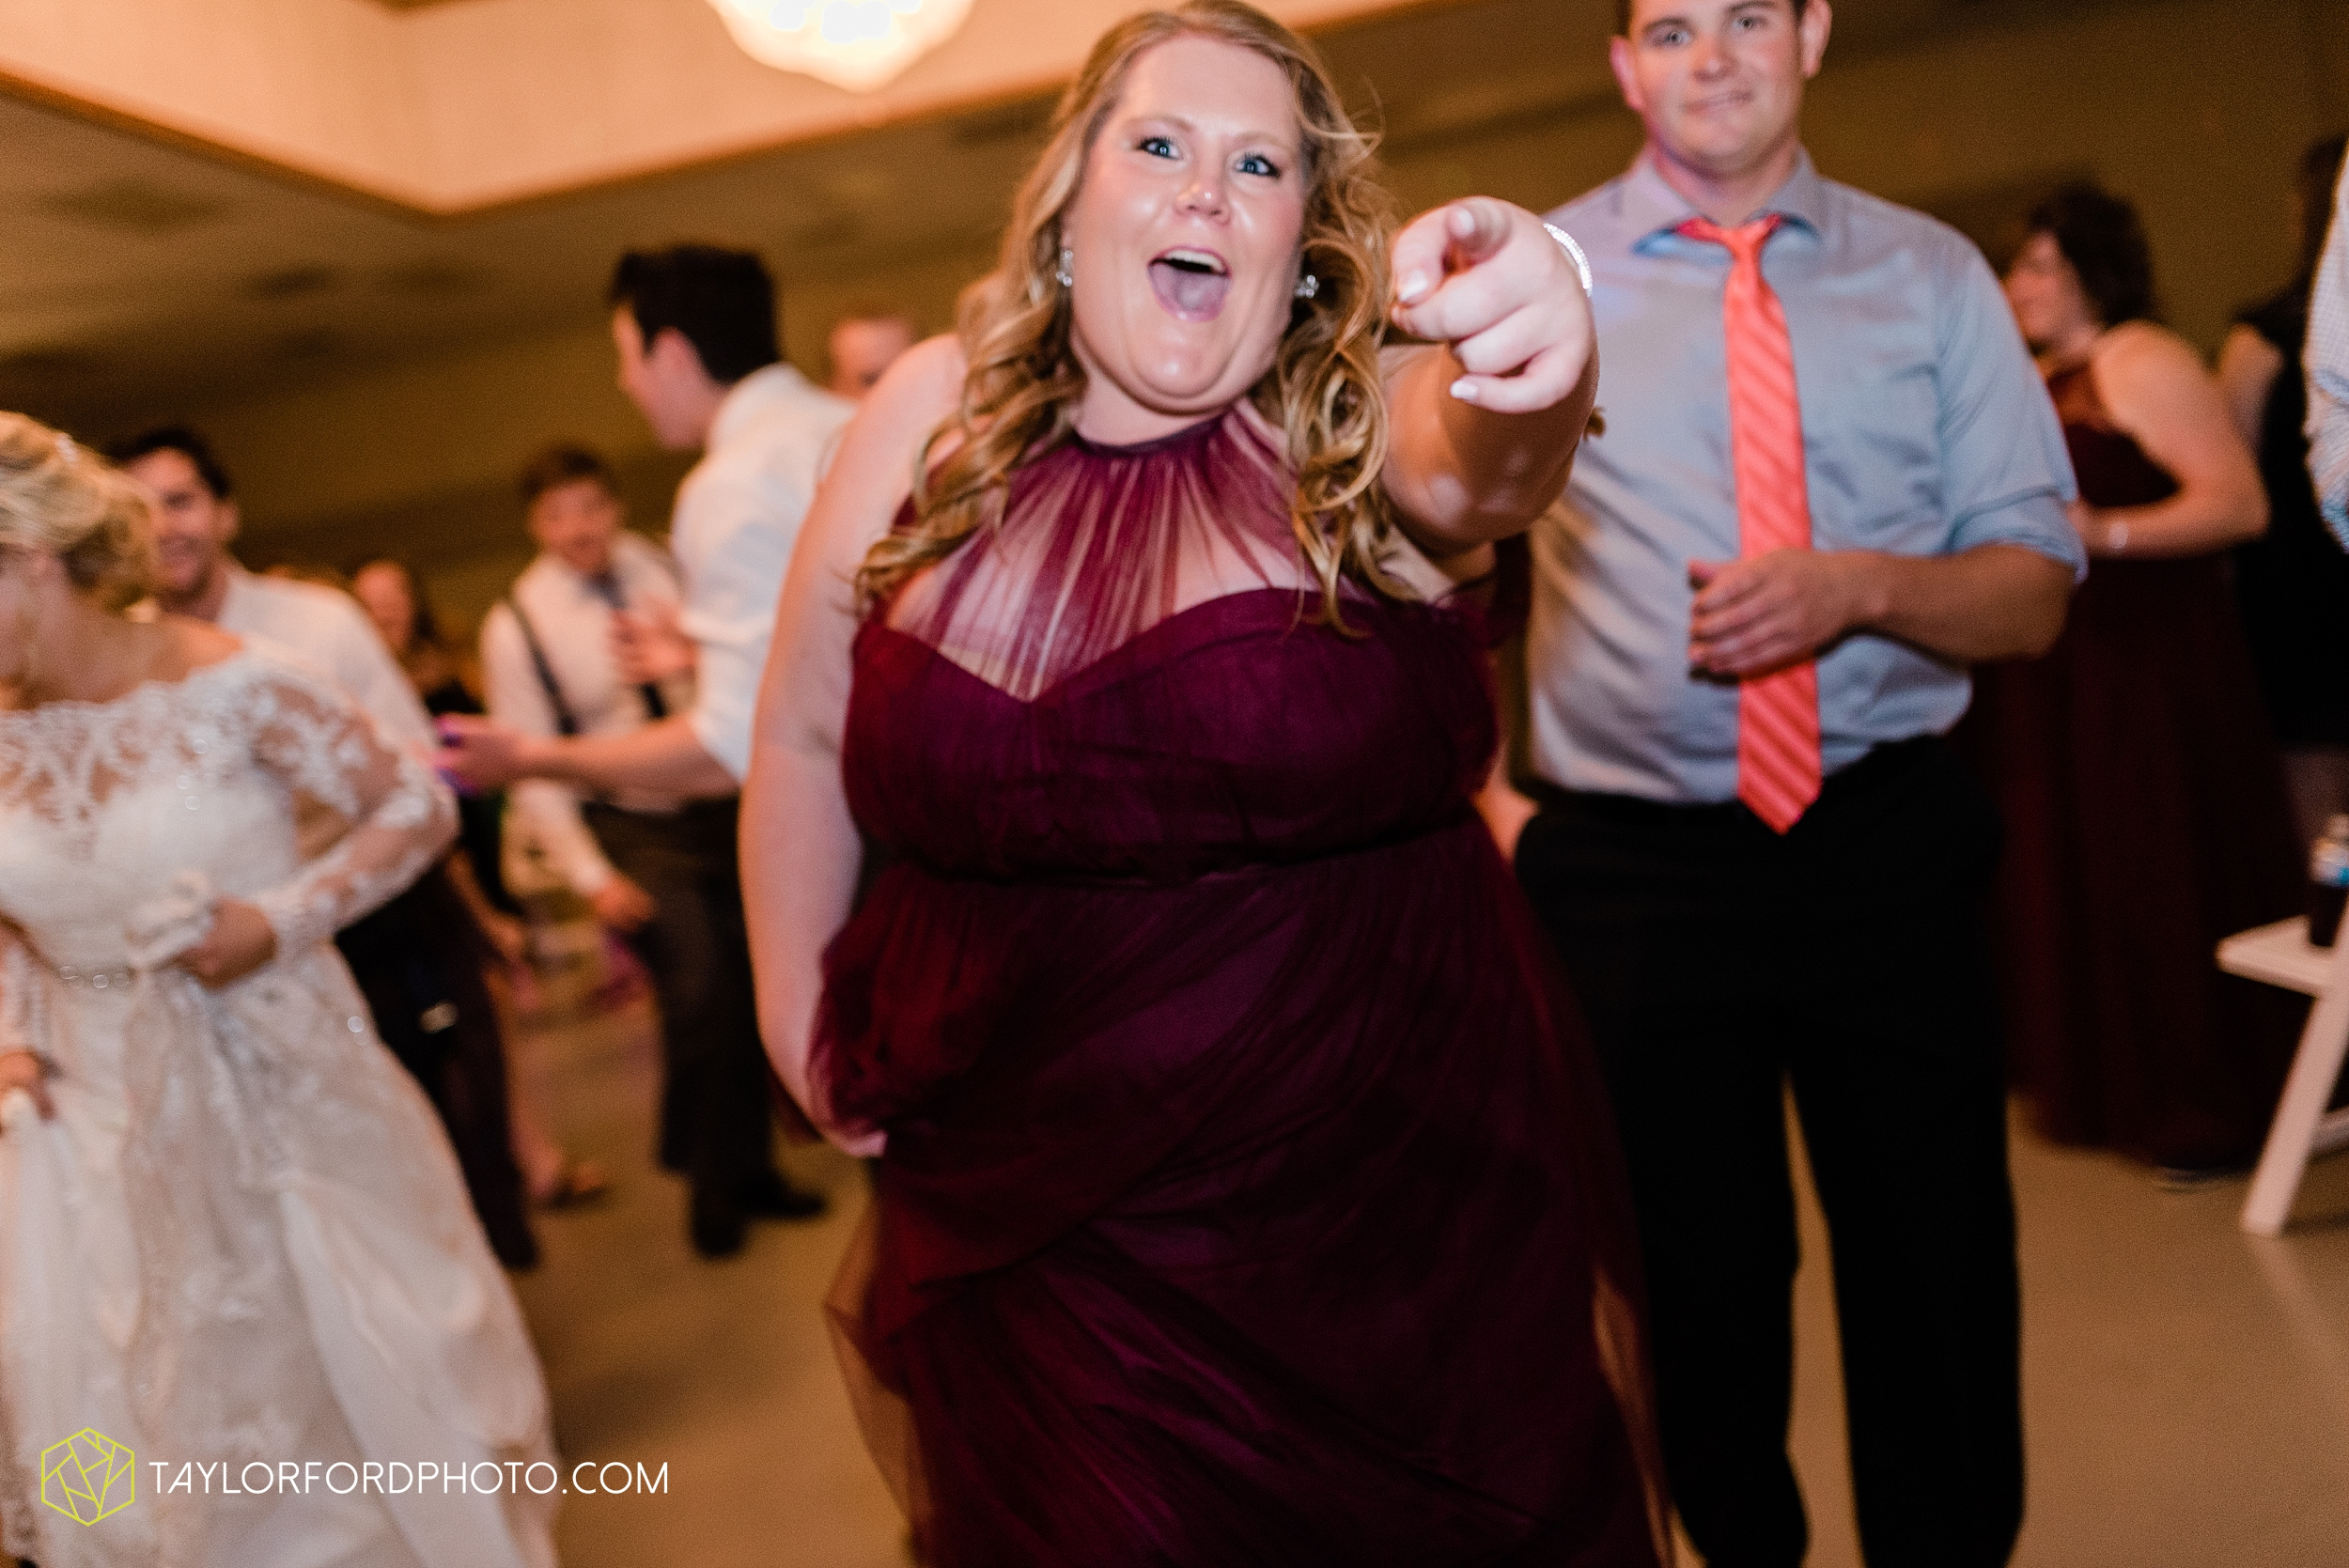 gayle-rayman-mike-steele-ottoville-ohio-wedding-immaculate-conception-parish-center-wedding-sycamore-lake-winery-wannamachers-photographer-taylor-ford-photography_0458.jpg